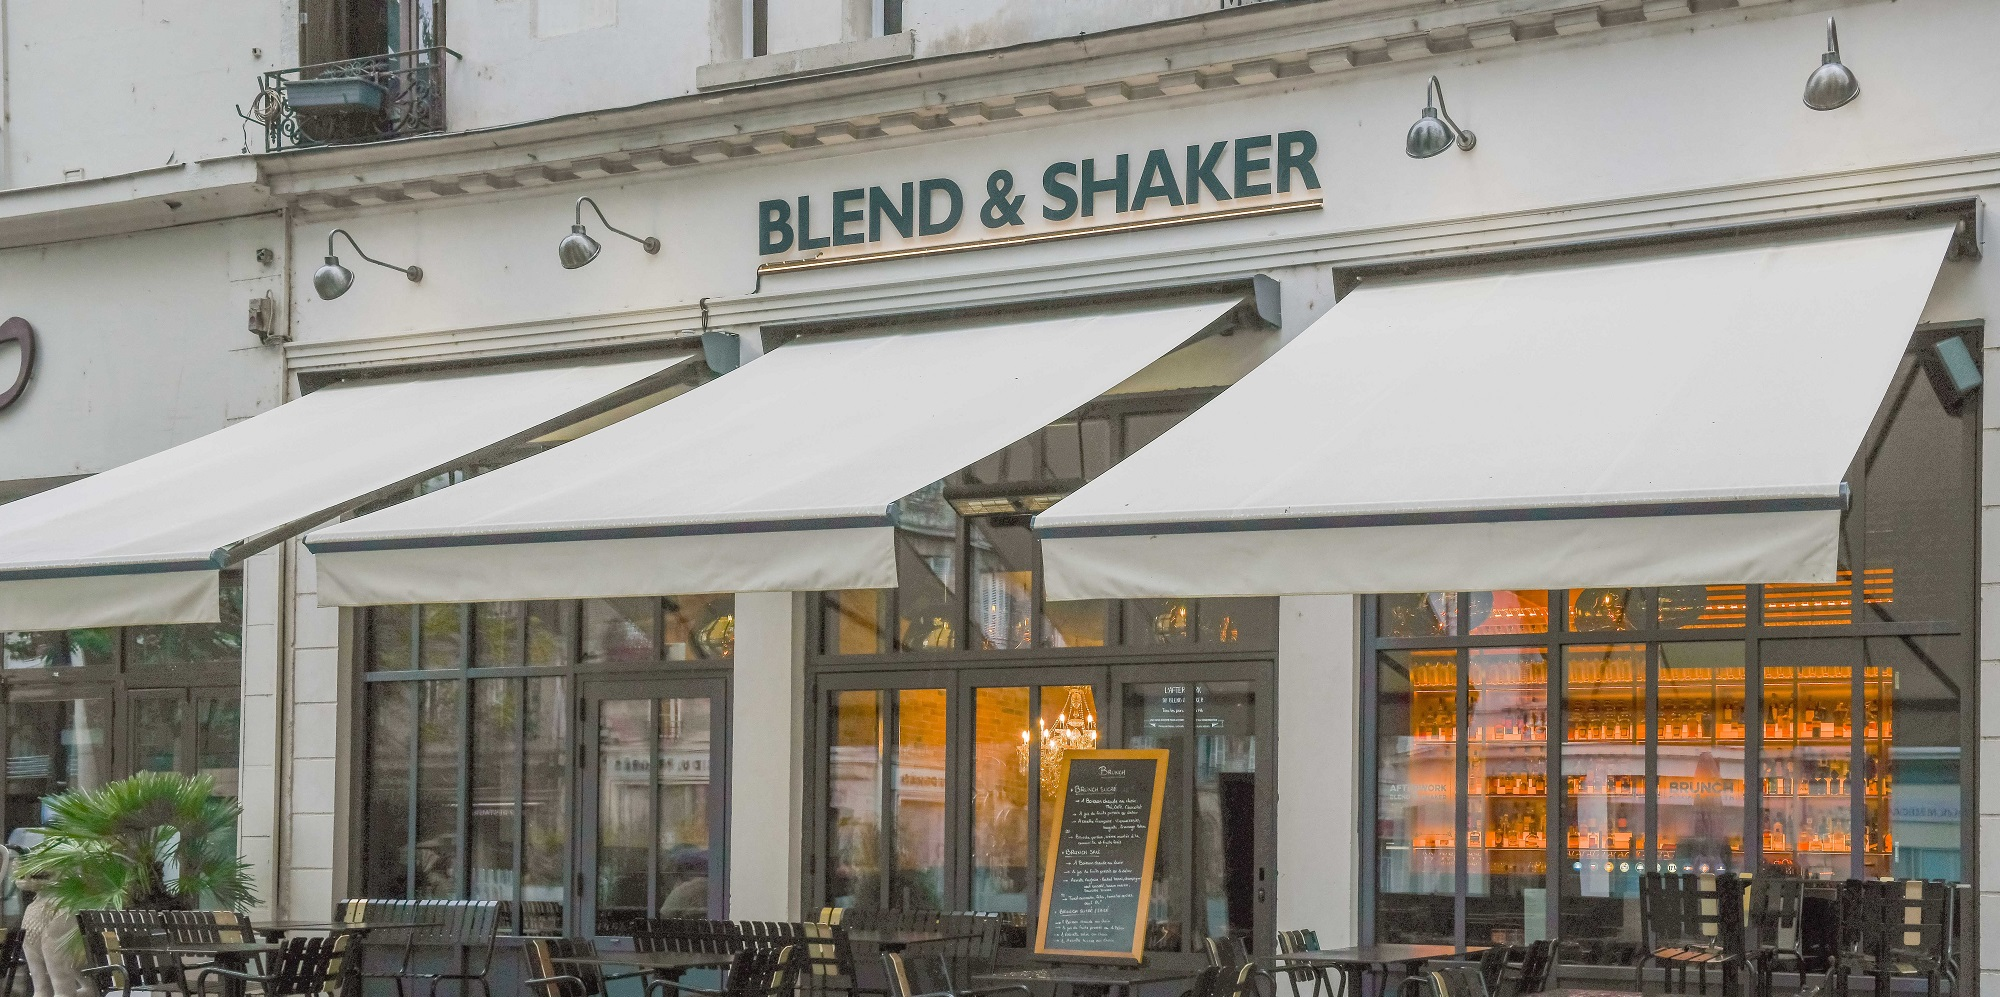 Brunch Blend & Shaker (37000 Tours)